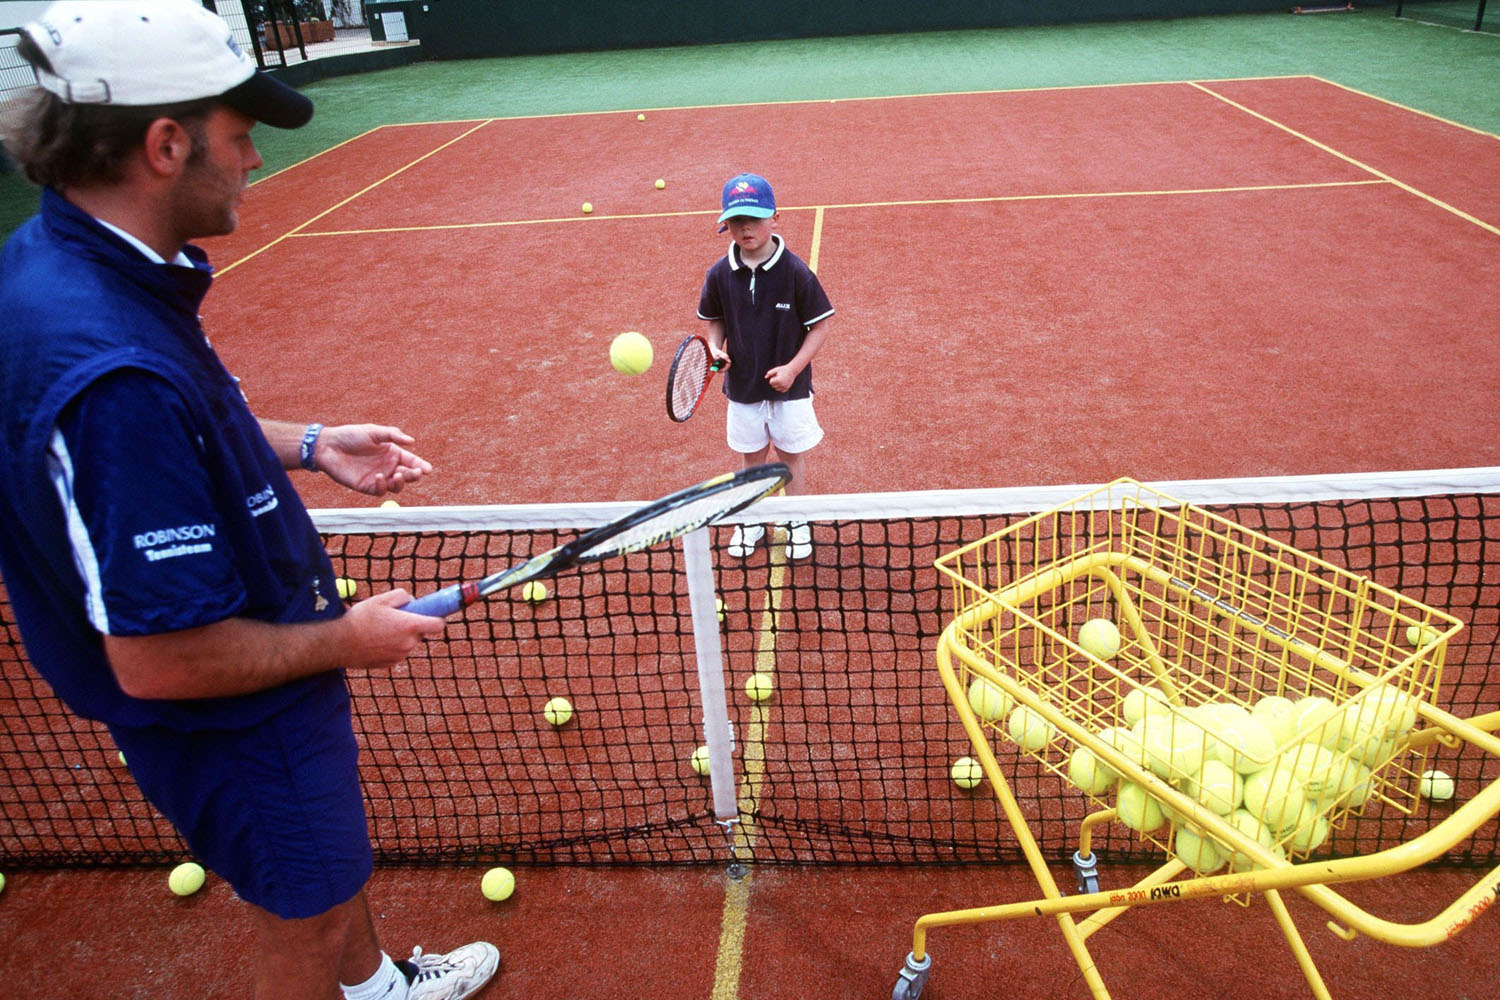 A young tennis player practicing the fundamentals of tennis with his coach at center court.